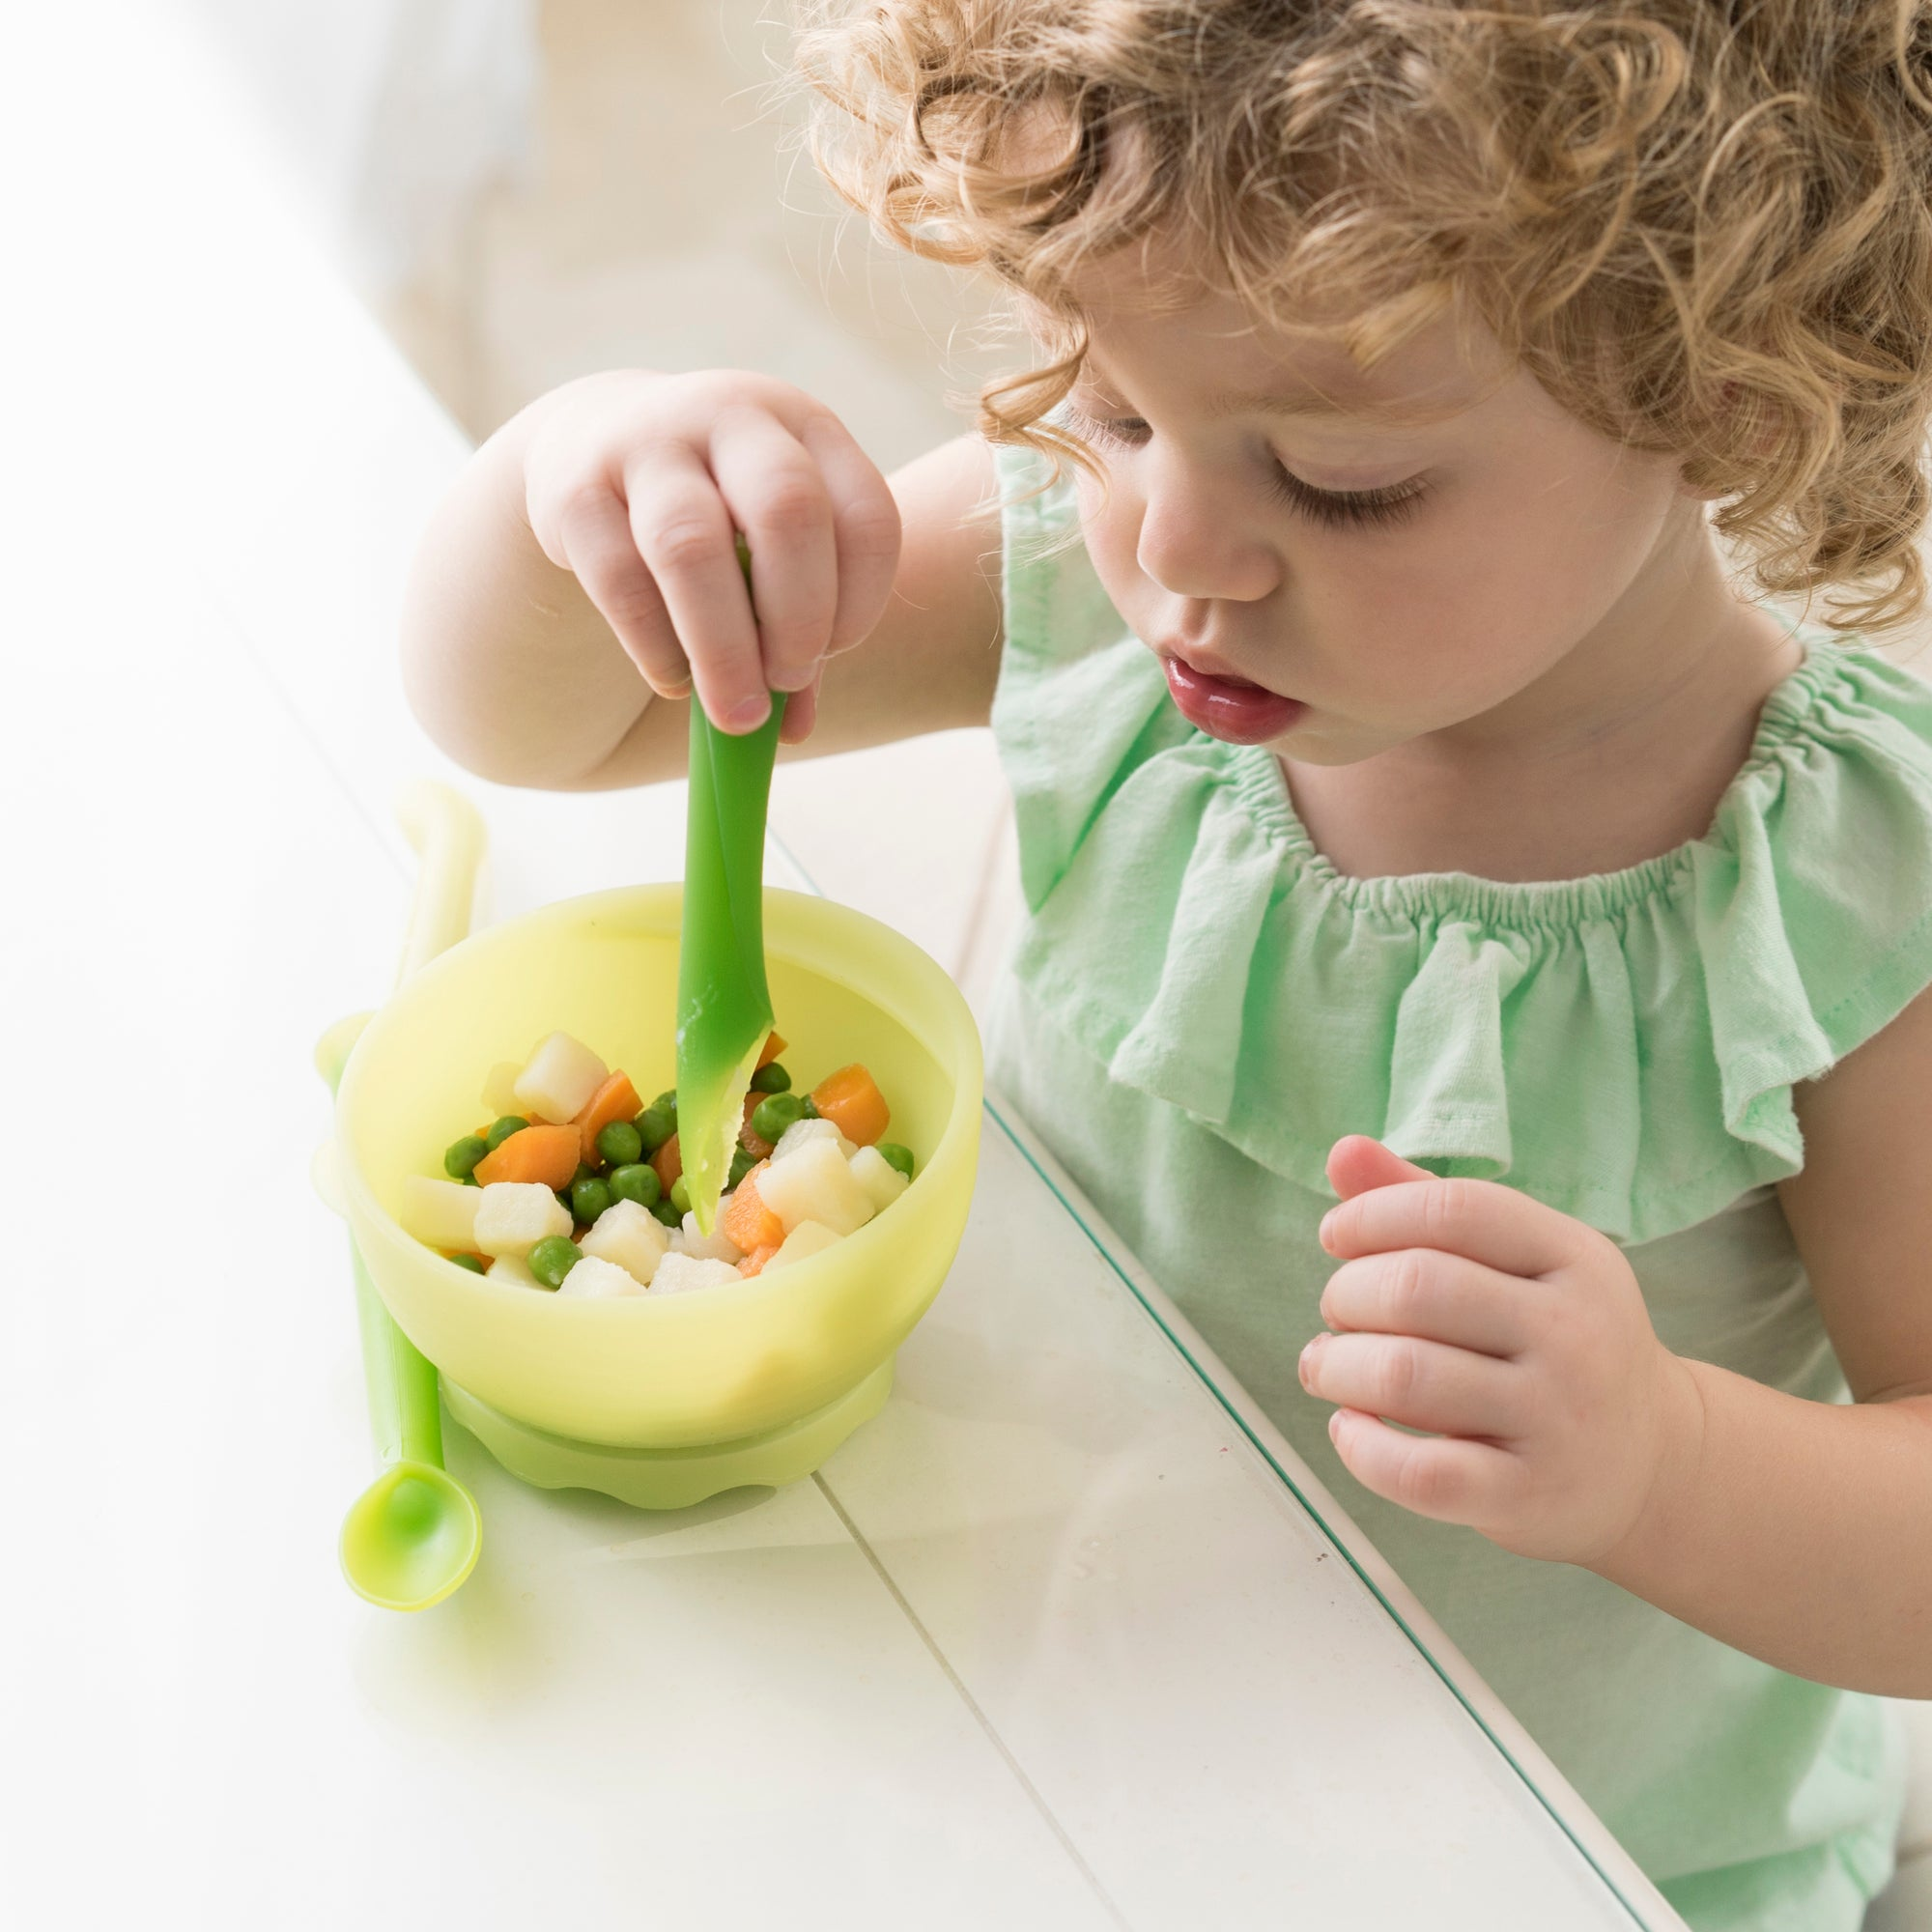 Motherly 10 must-haves for starting solids with your baby